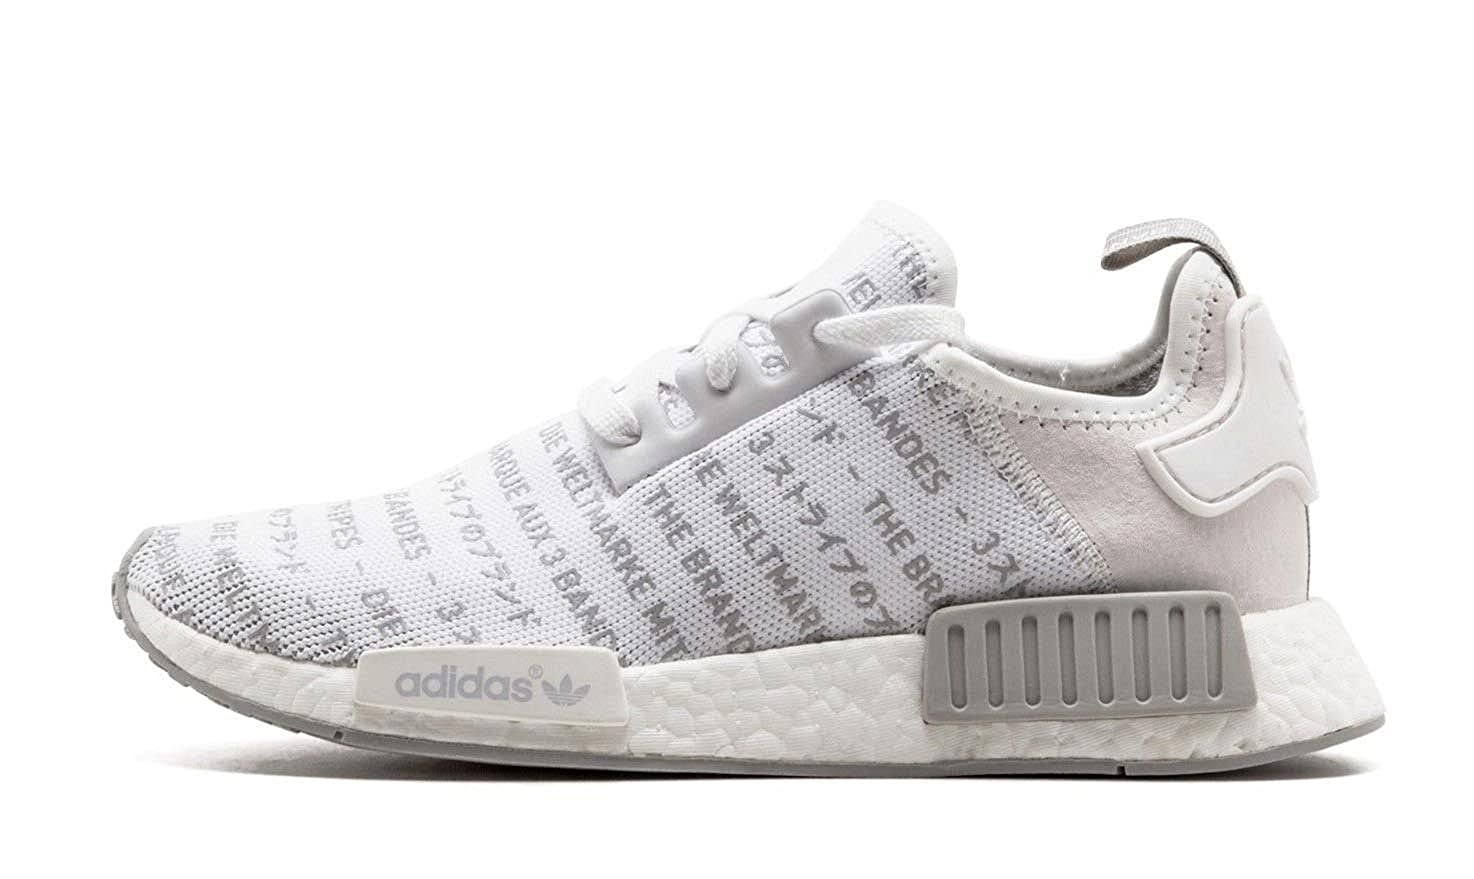 10039ec99b7 adidas NMD R1 Boost Trainers Whiteout Blackout Three Stripes in ...